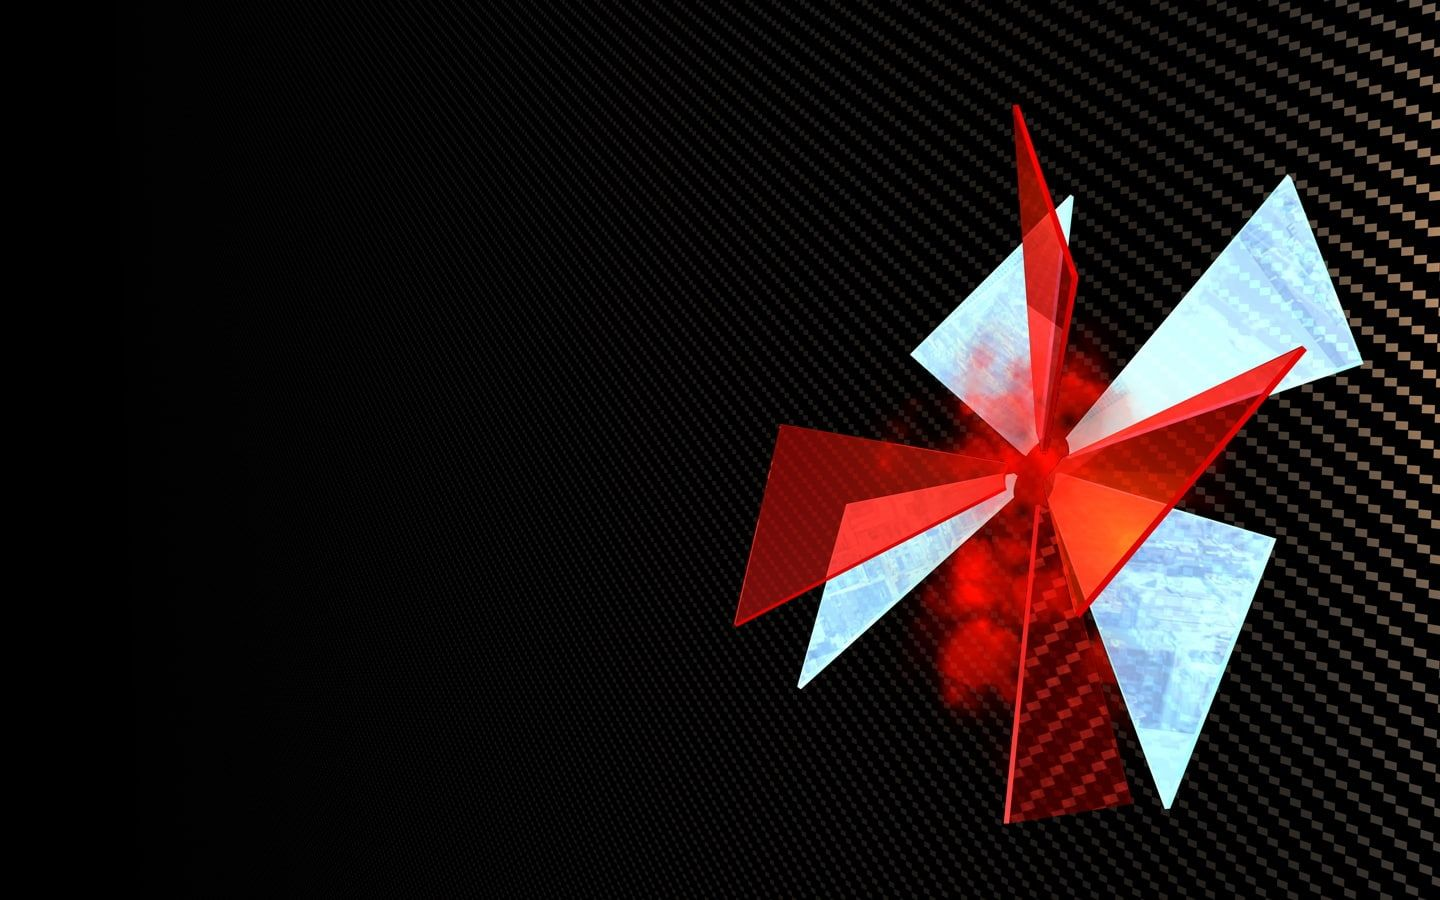 Black Red Umbrella Logo Video Games Resident Evil Hd Art Black Red White Umbrella Resident Evil 720p Wallpa In 2020 Umbrella Corporation Resident Evil Wallpaper